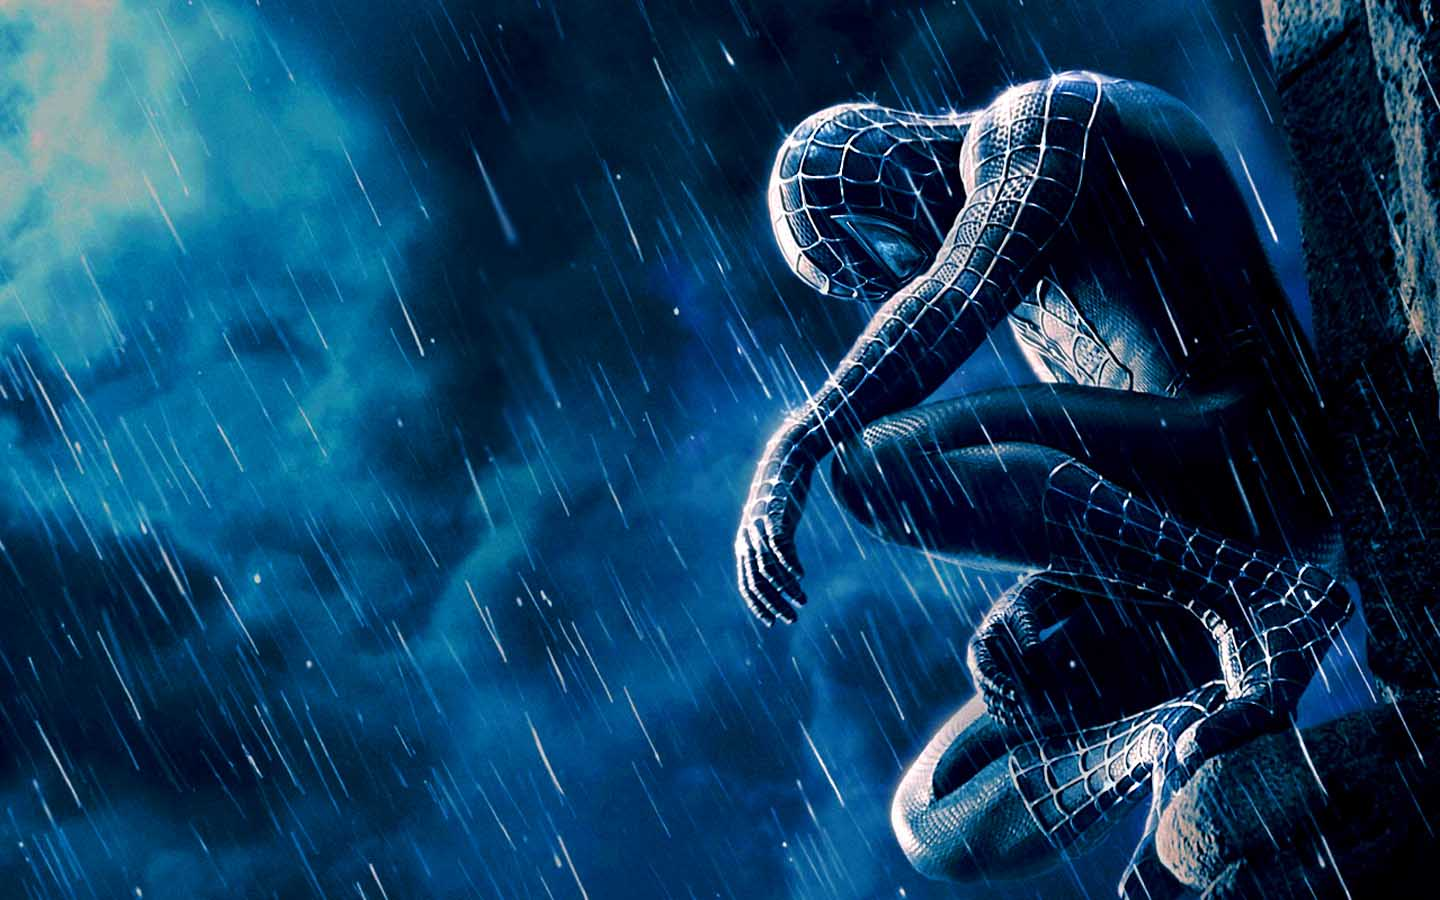 Spider Man 4k Wallpaper Download Hd Wallpaper